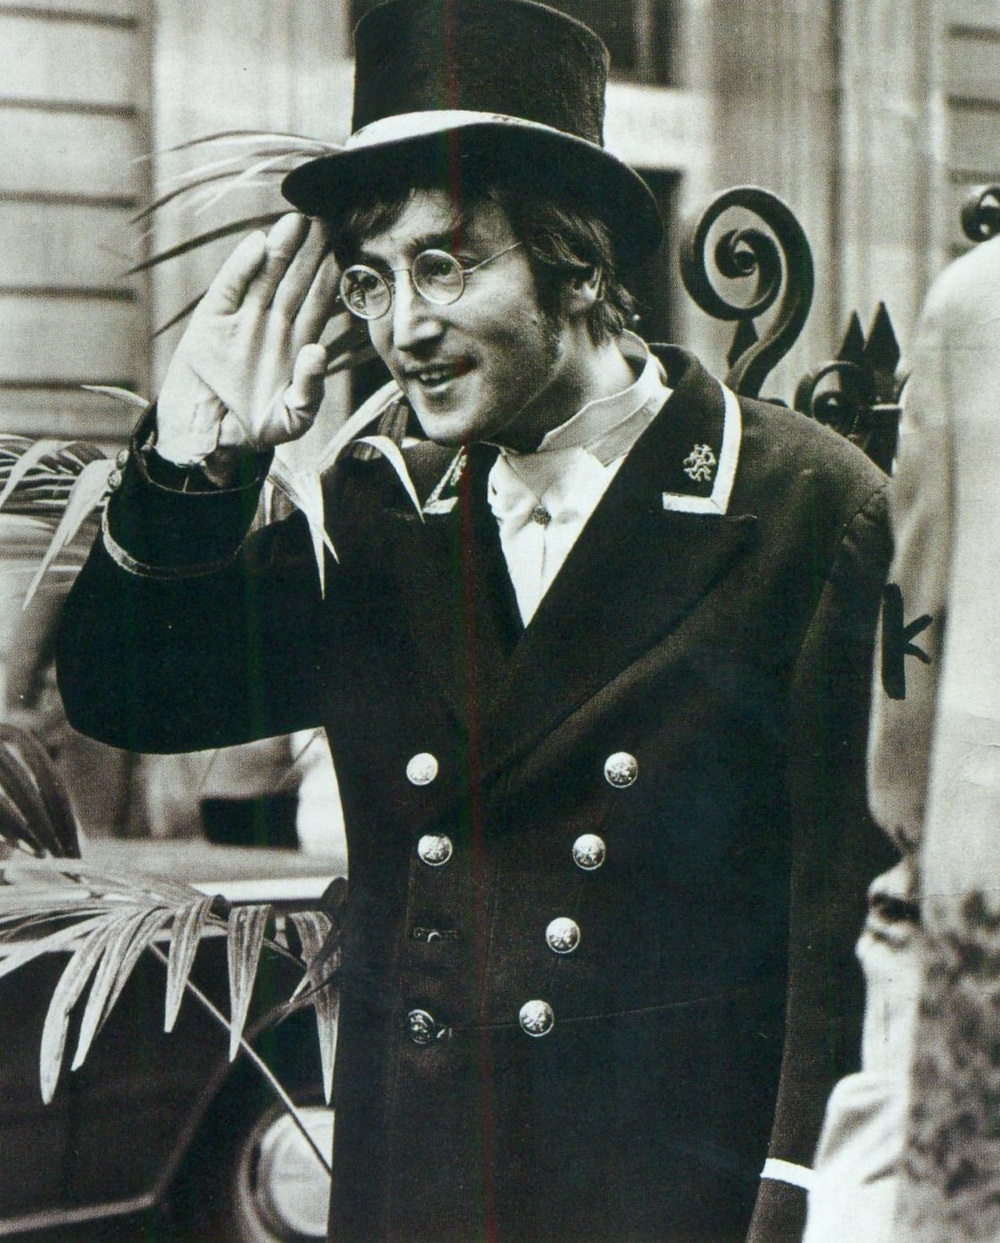 John Lennon filming a skit for Not Only... But Also, November 27th 1966.